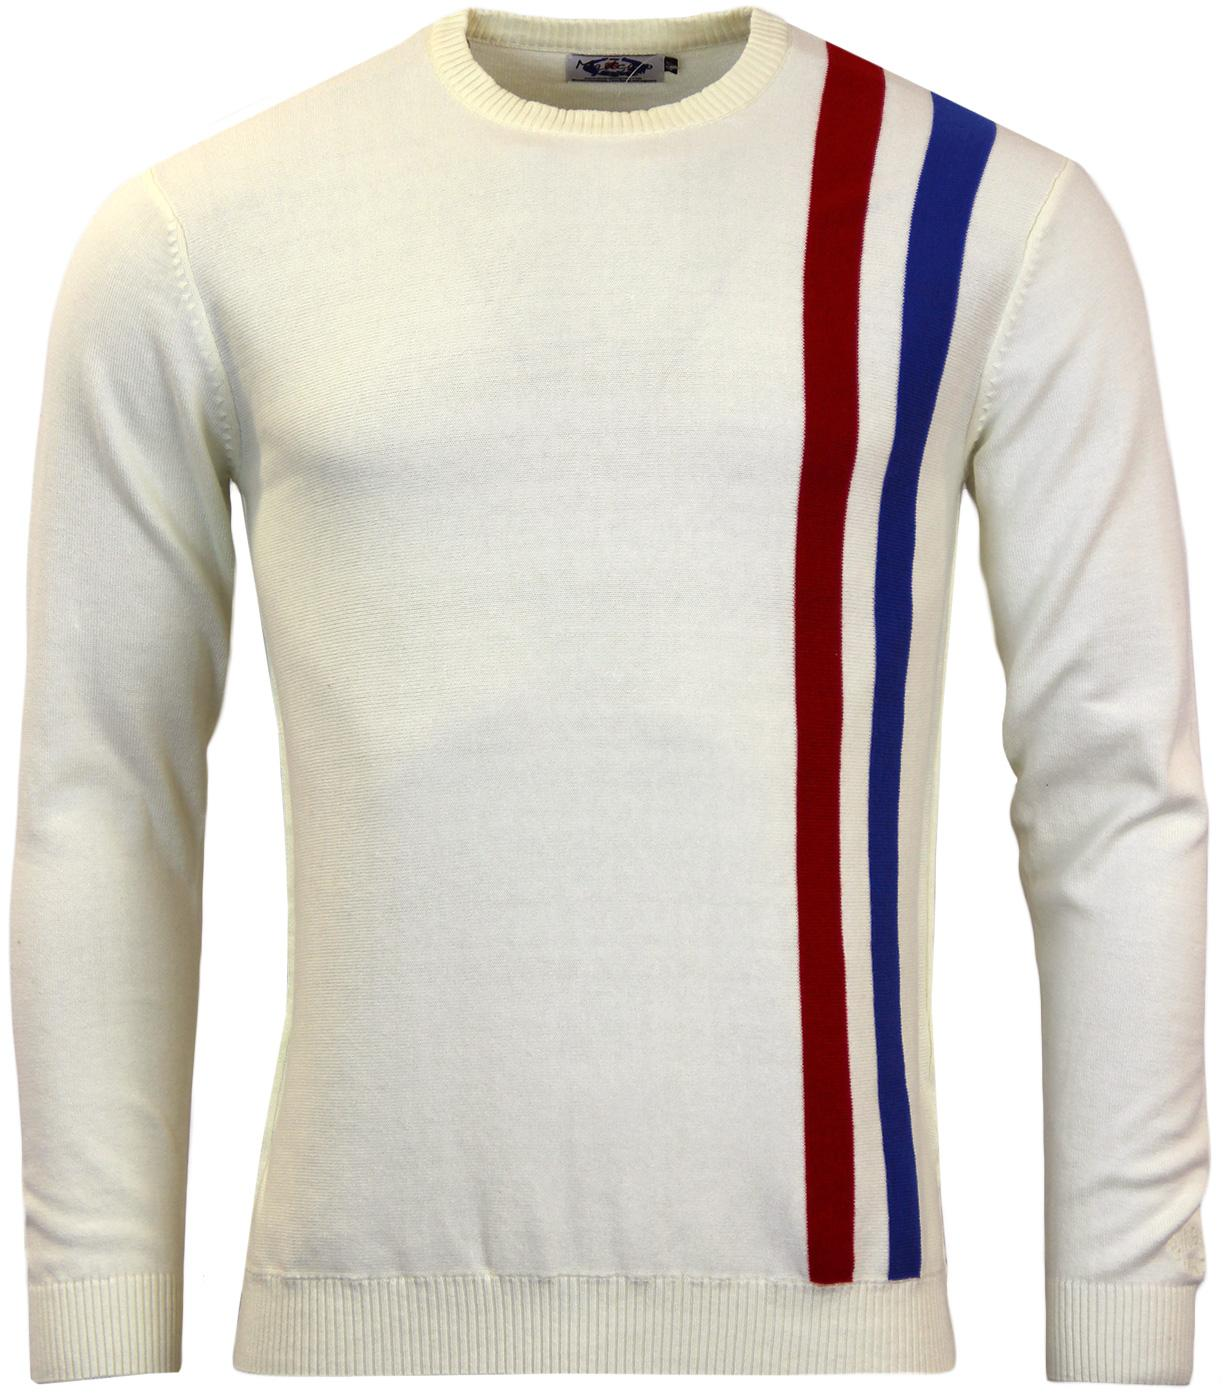 MADCAP ENGLAND RETRO MOD RACING JUMPER ATTACK 60s